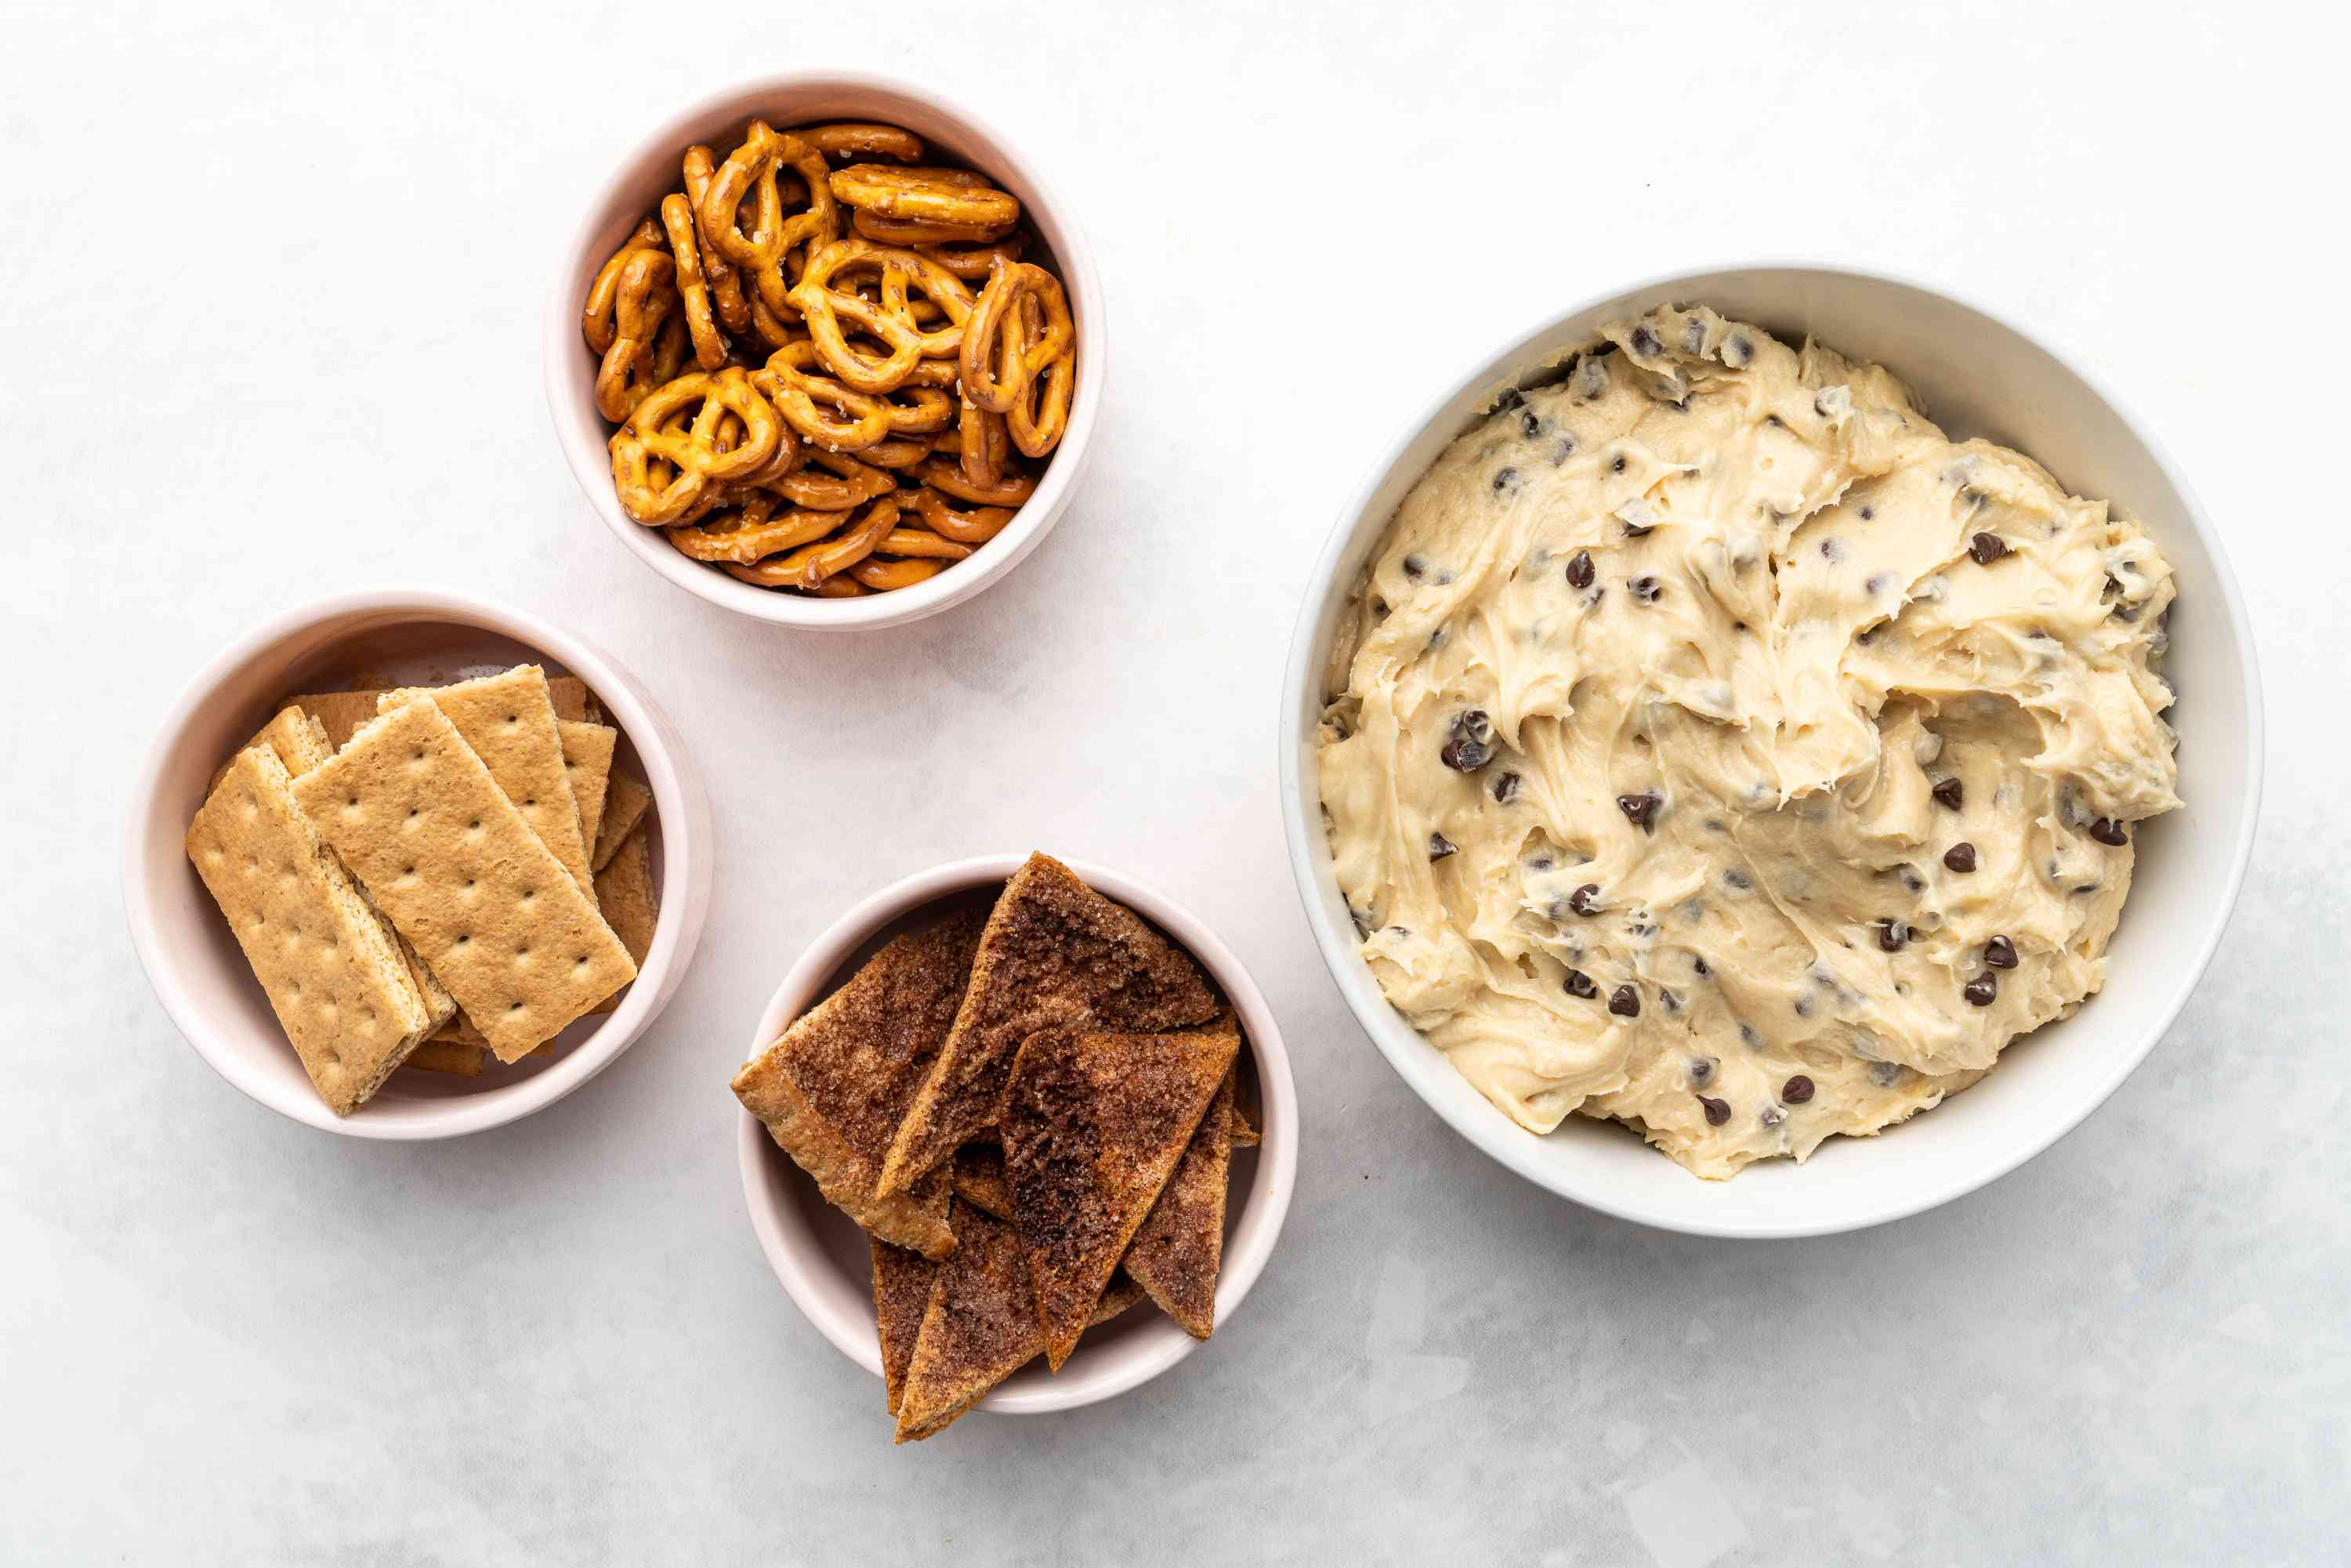 Chocolate Chip Cookie Dough Dip served with crackers, pretzels, and pita chips